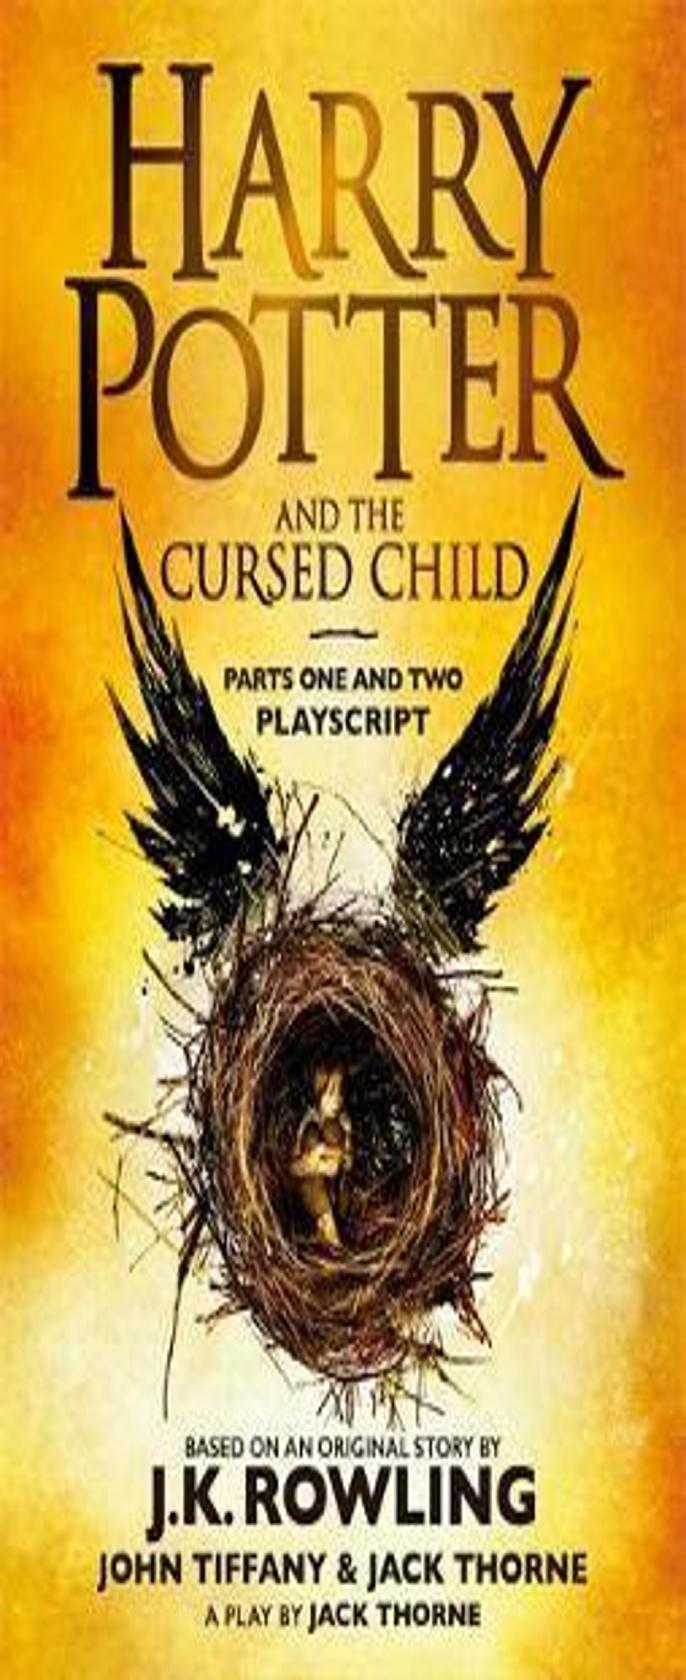 HARRY POTTER AND THE CURSED CHILD The Eighth Story -  08 Pbk